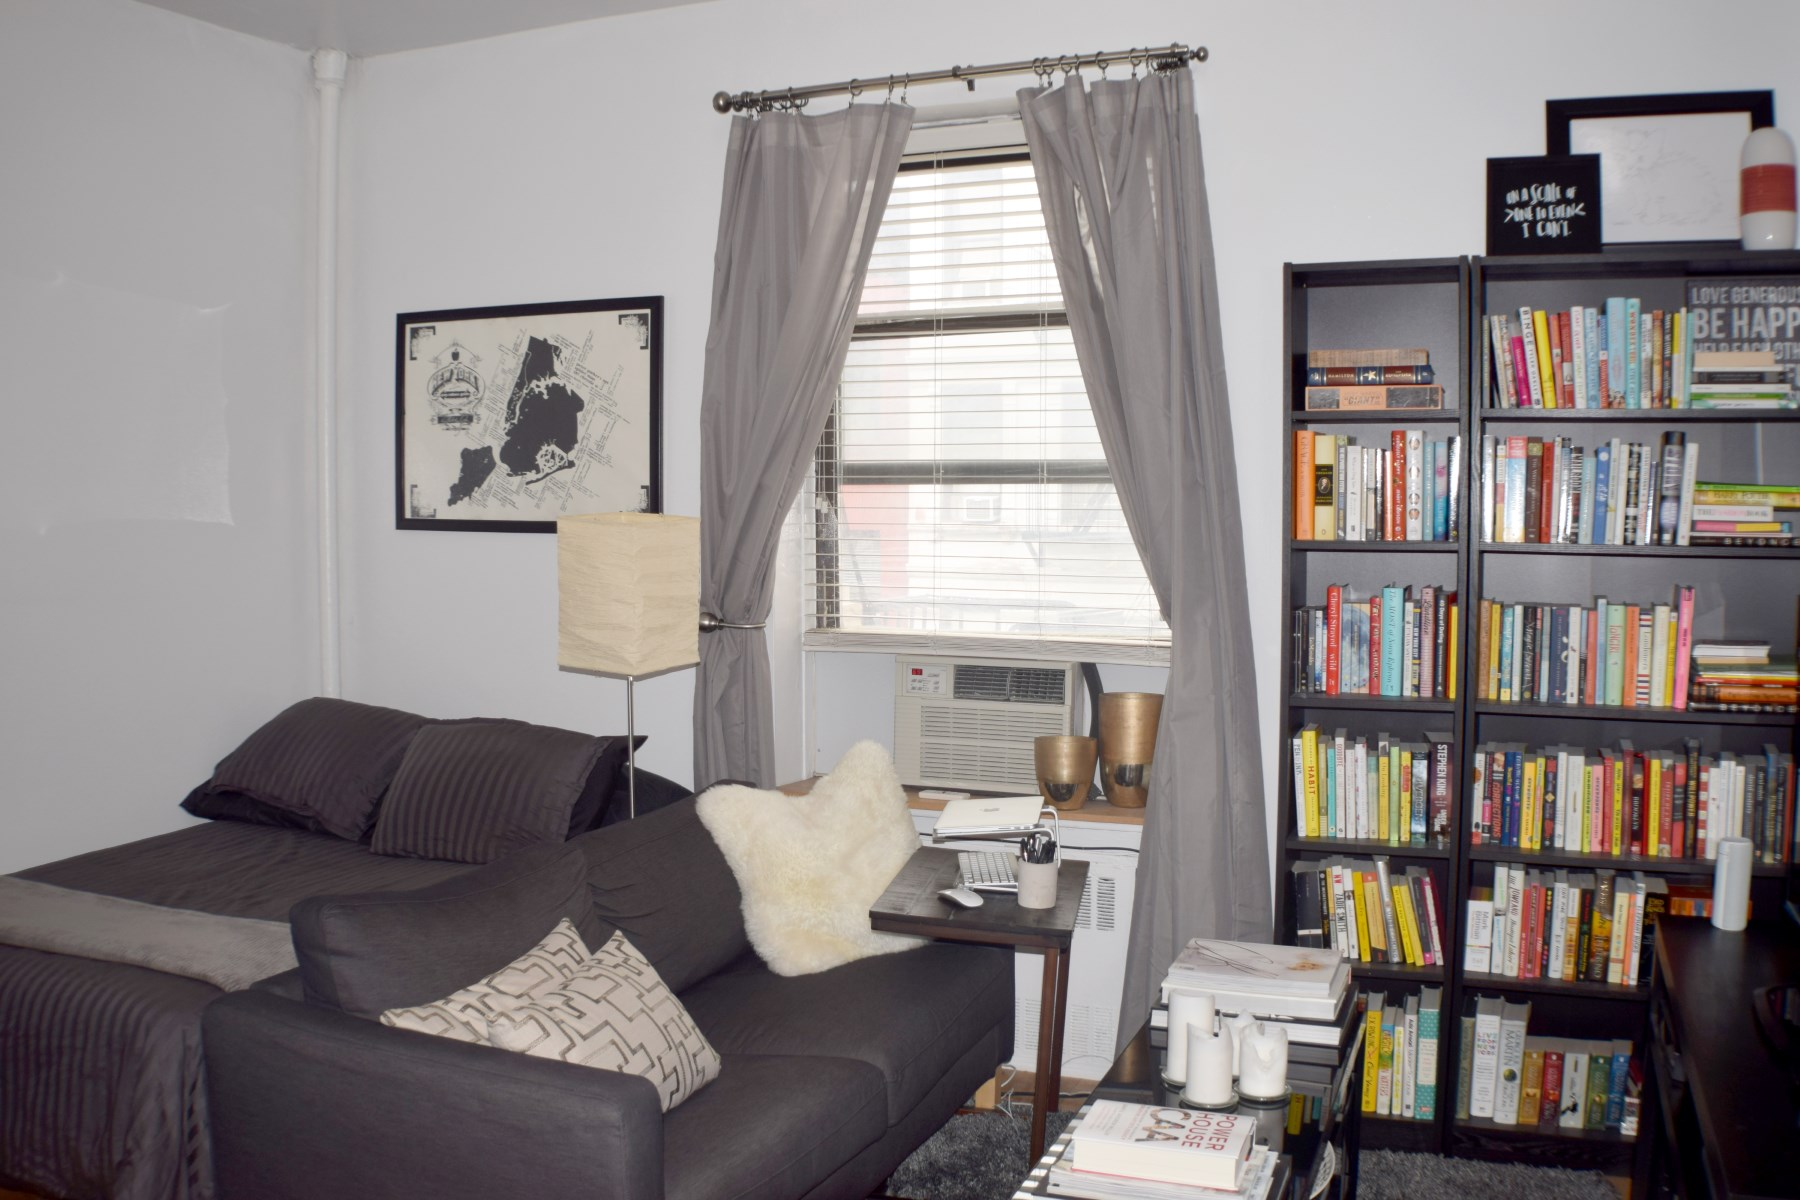 Co-op for Rent at 102 West 80th Street, Apartment 42 102 West 80th Street Apt 42 New York, New York, 10024 United States